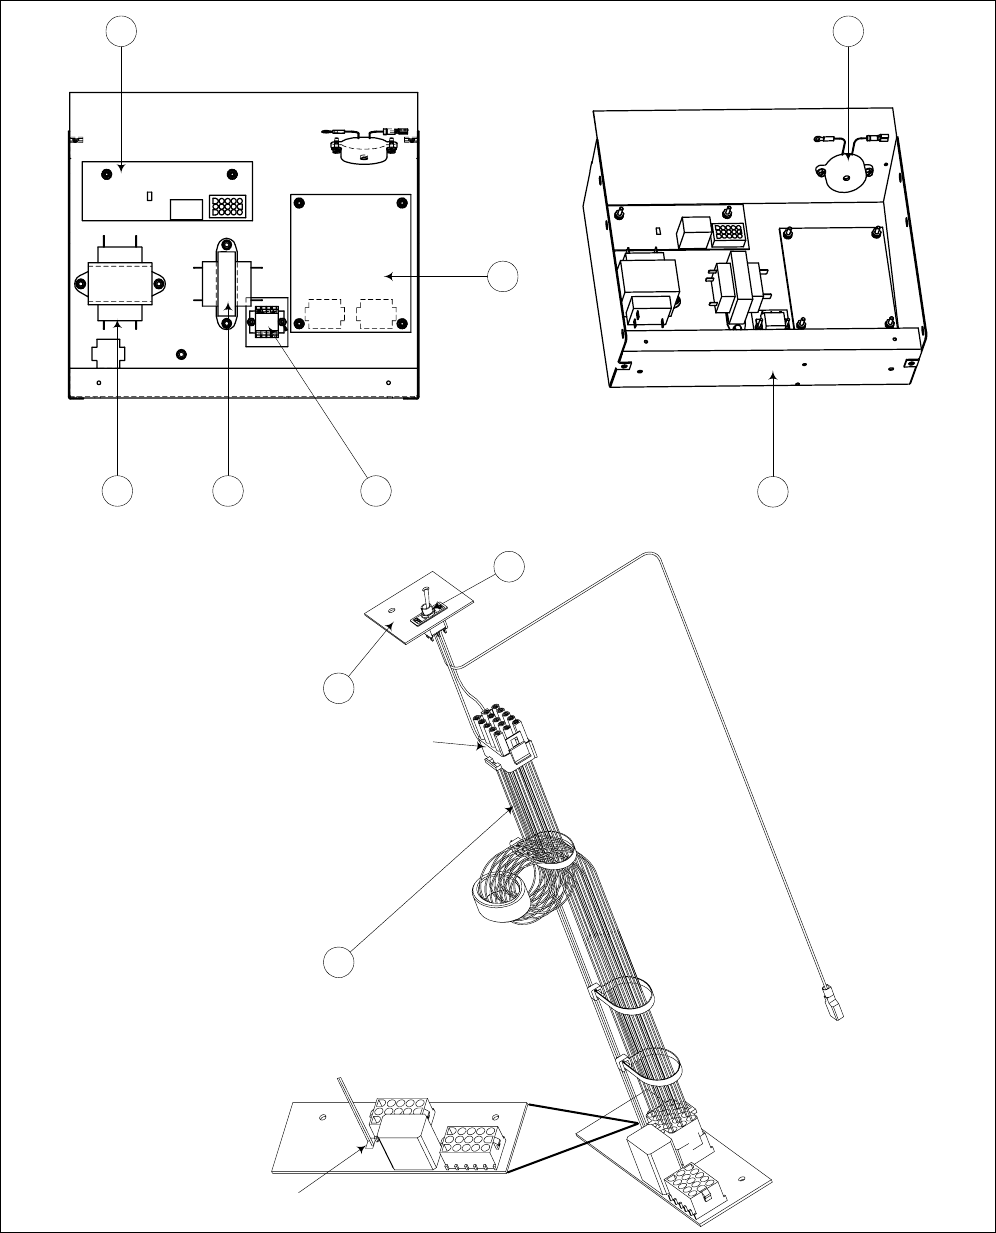 Frymaster H20 5 Series Users Manual 819 5606 Front Cover Dec 04 Wiring Diagram 6 3